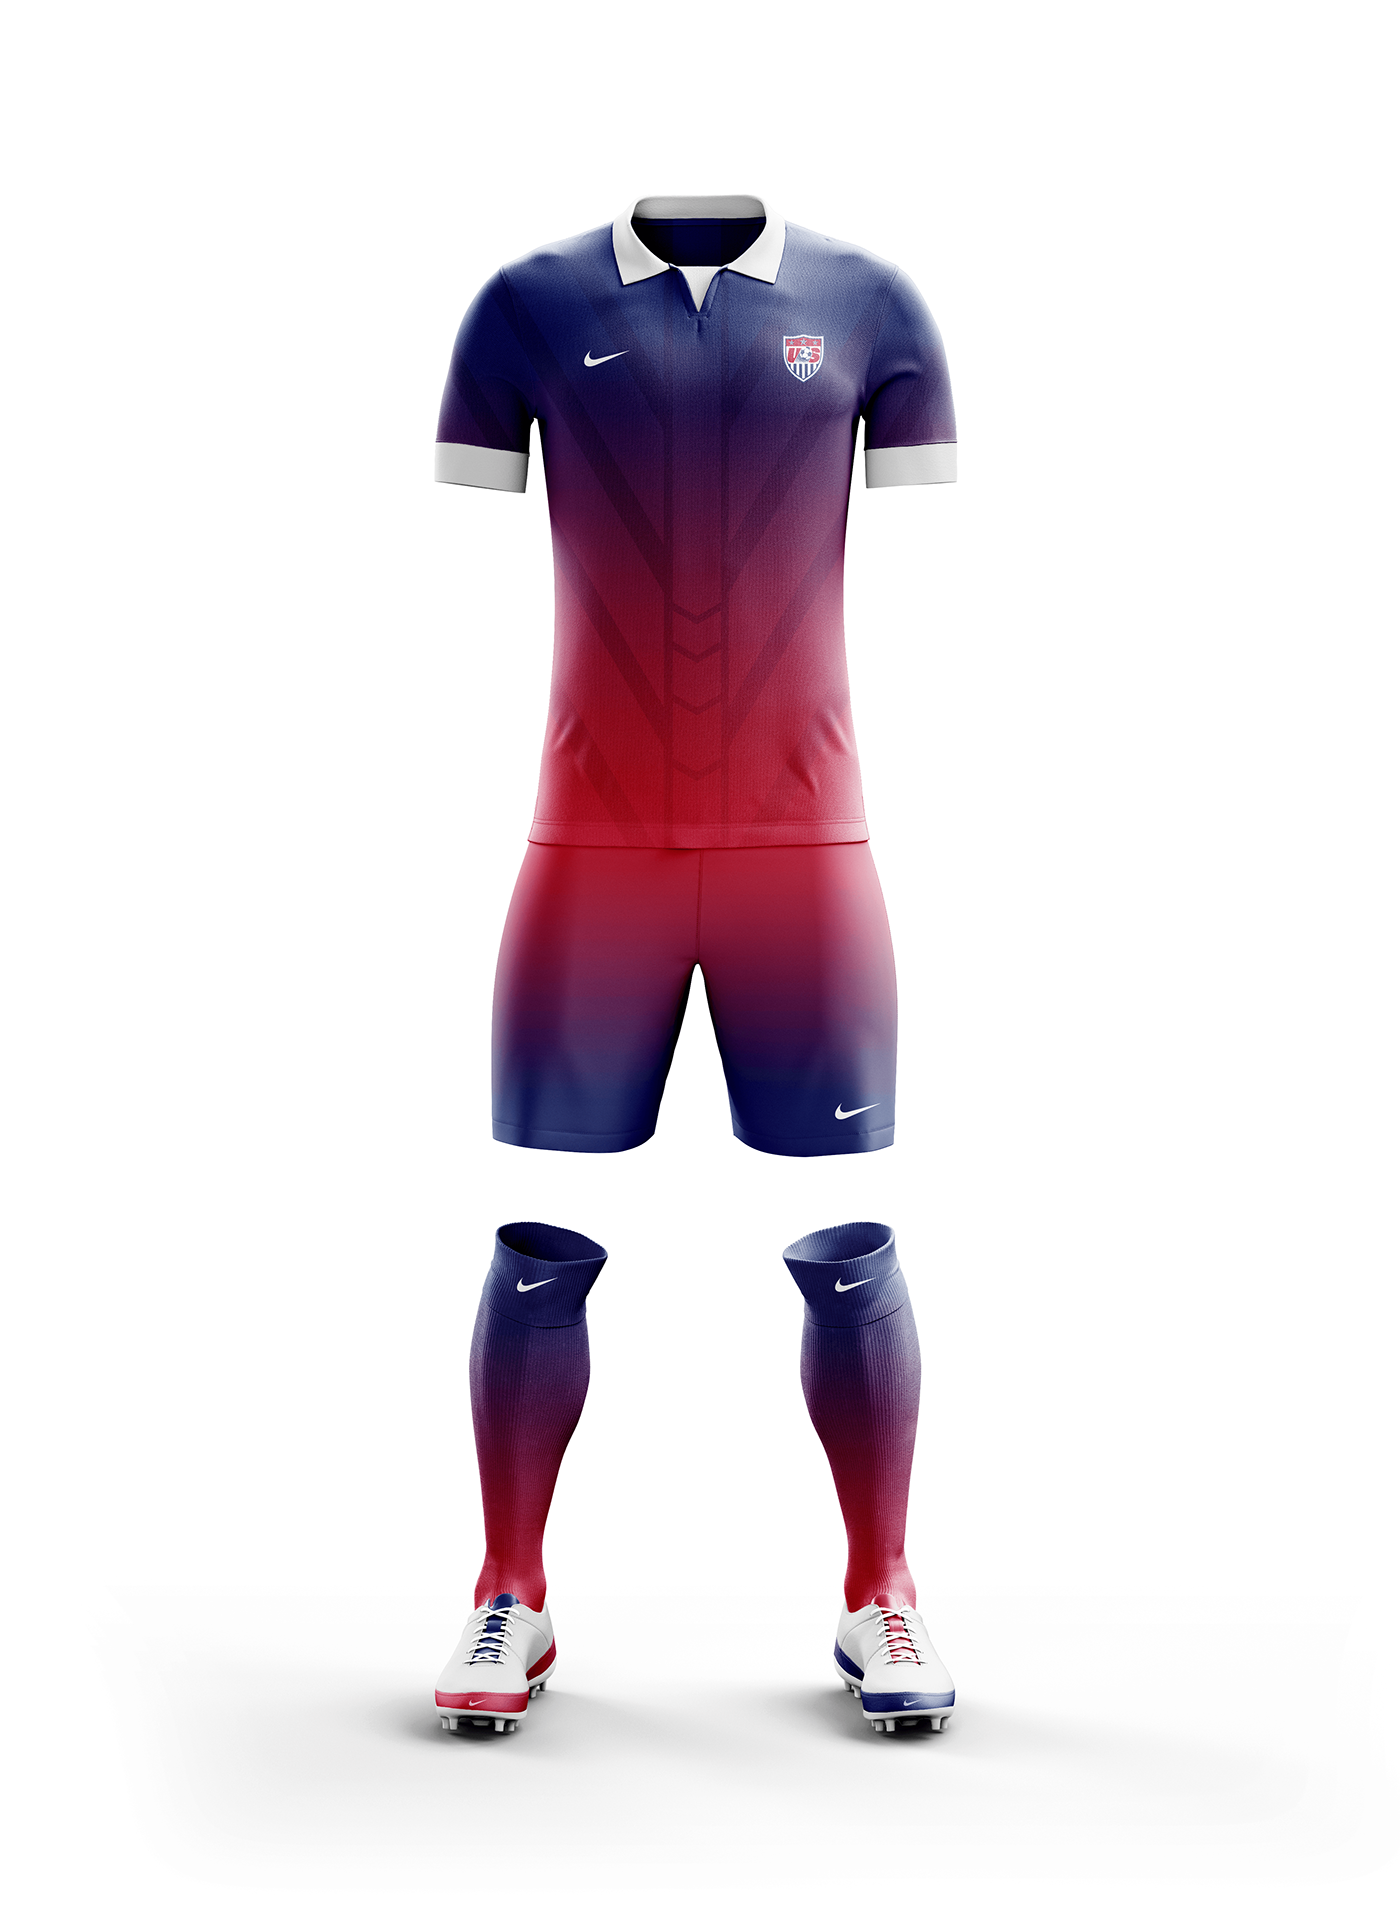 37144bd2b US International Soccer Kits on Behance